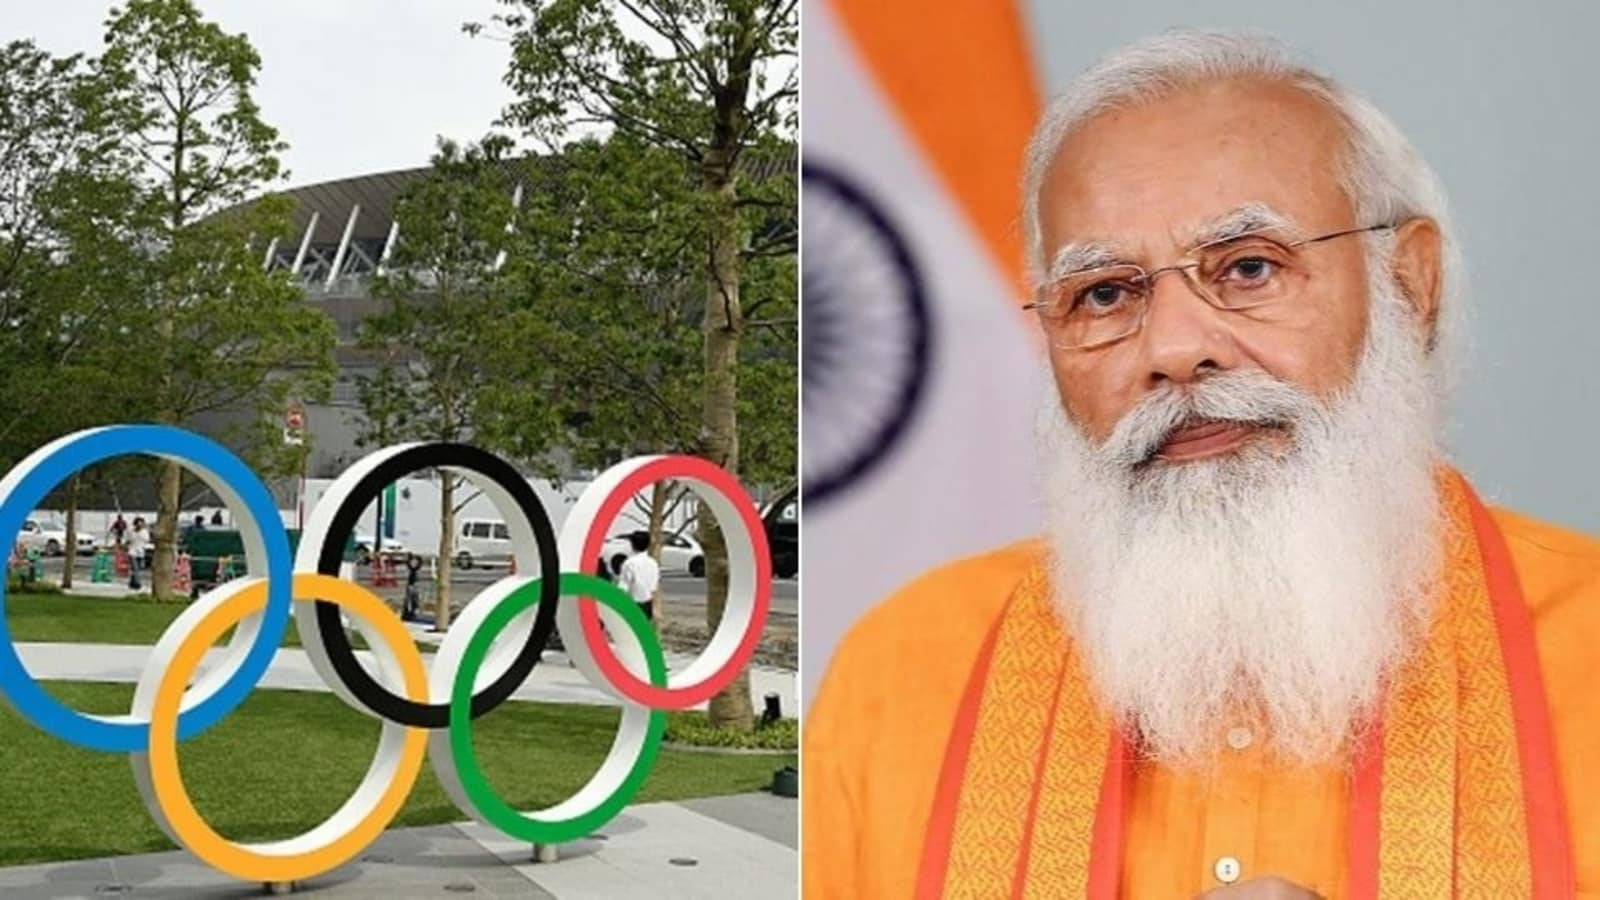 Tokyo 2020: Wishing the very best to our contingent, says PM Modi | Olympics - Hindustan Times